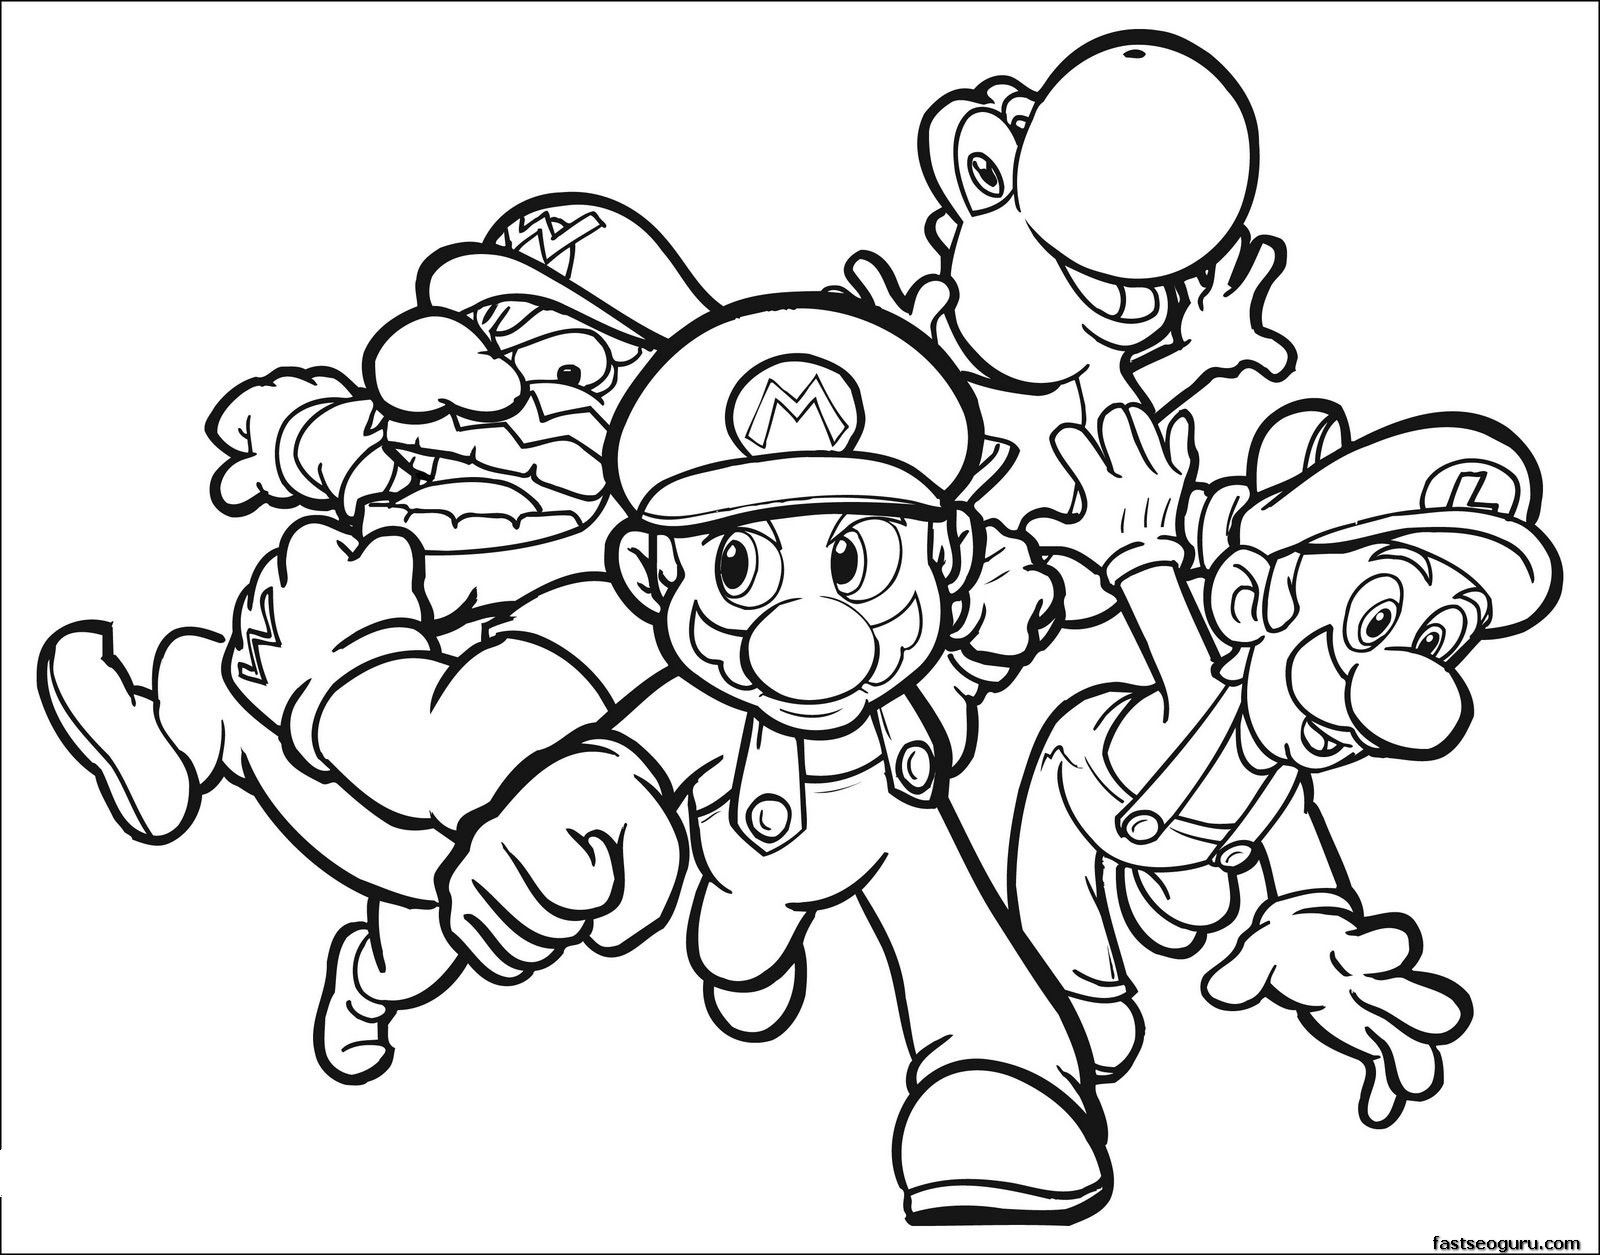 printable coloring sheets | Coloring Pages for Kids